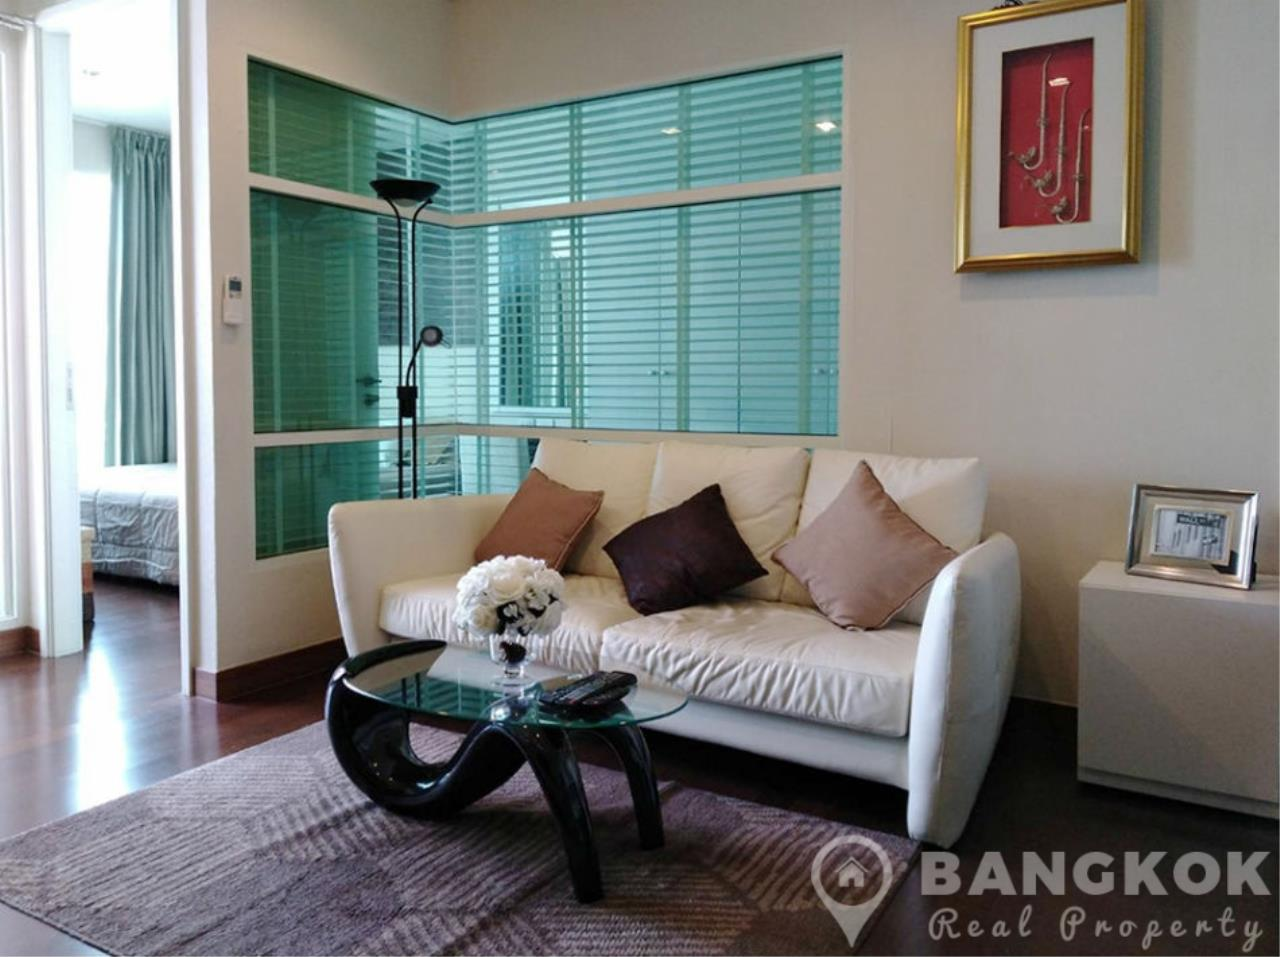 Bangkok Real Property Agency's Ivy Thonglor | Stylish Modern Thonglor 1 Bed 1 Bath 2